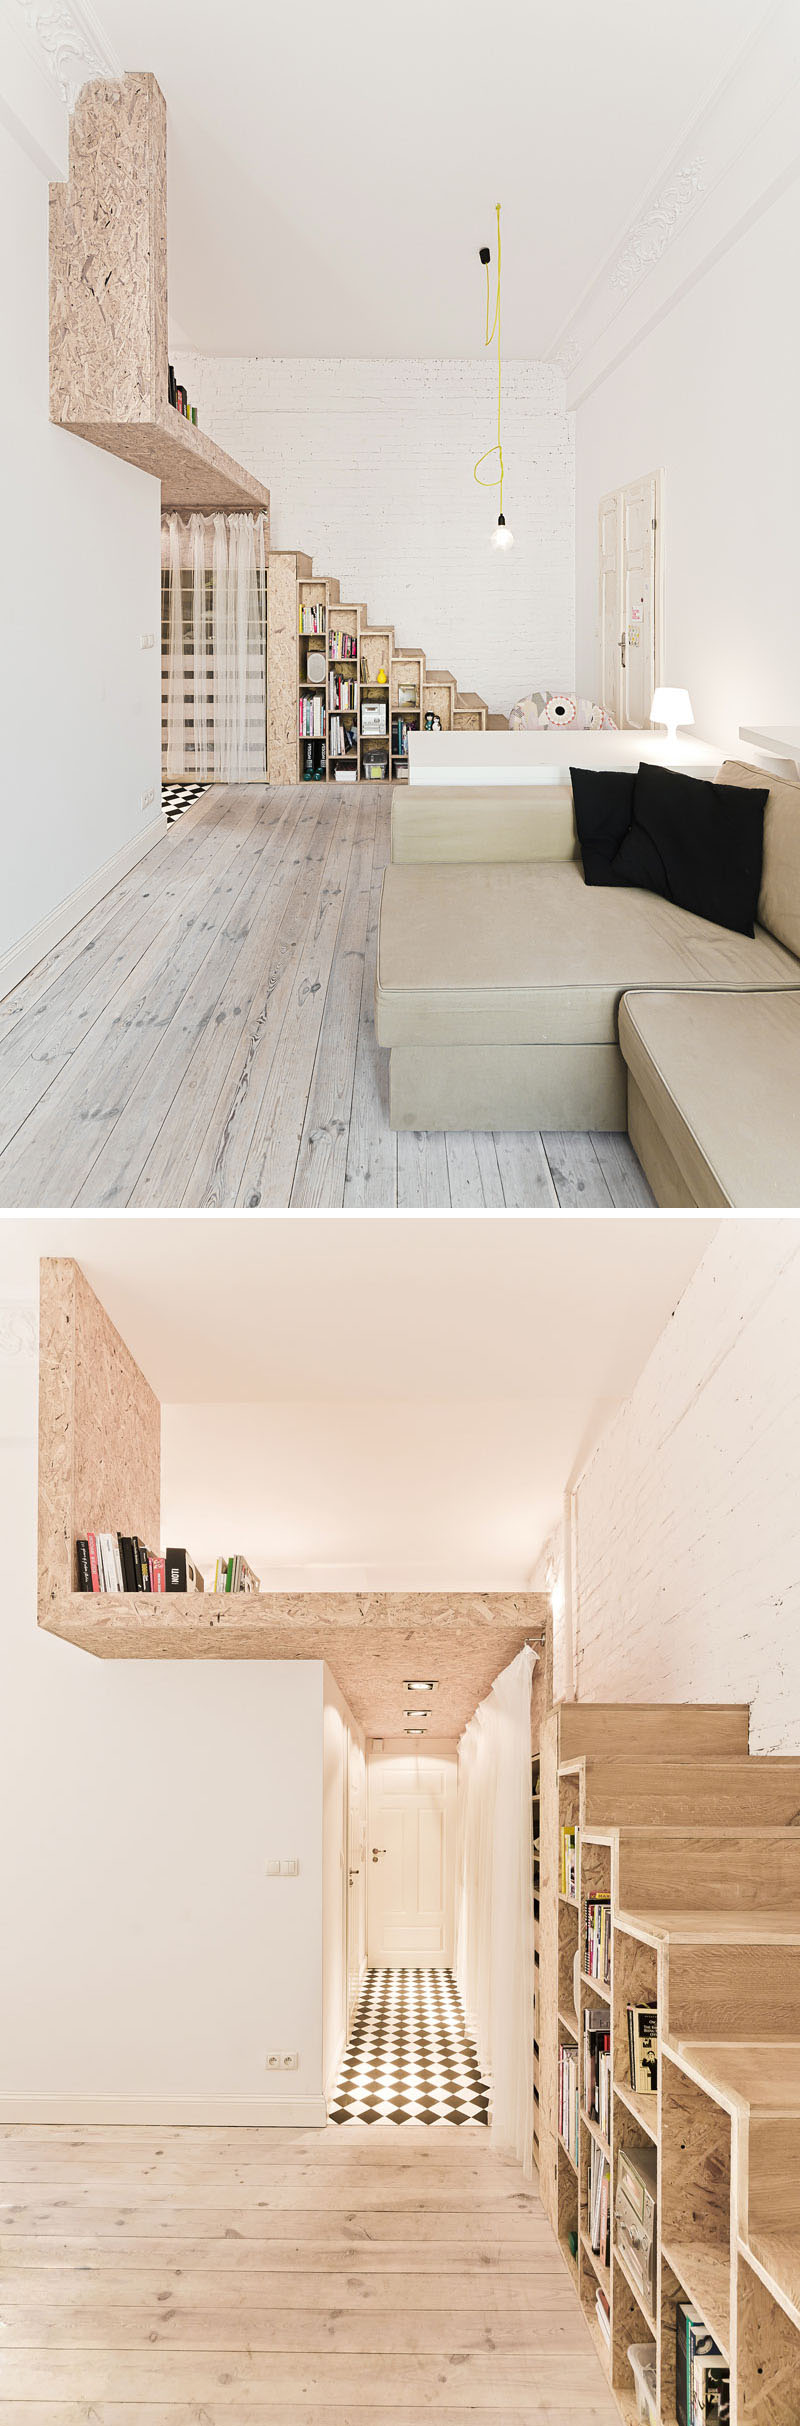 Lofty Vision: Clever Tiny Apartment Design | Designs ...